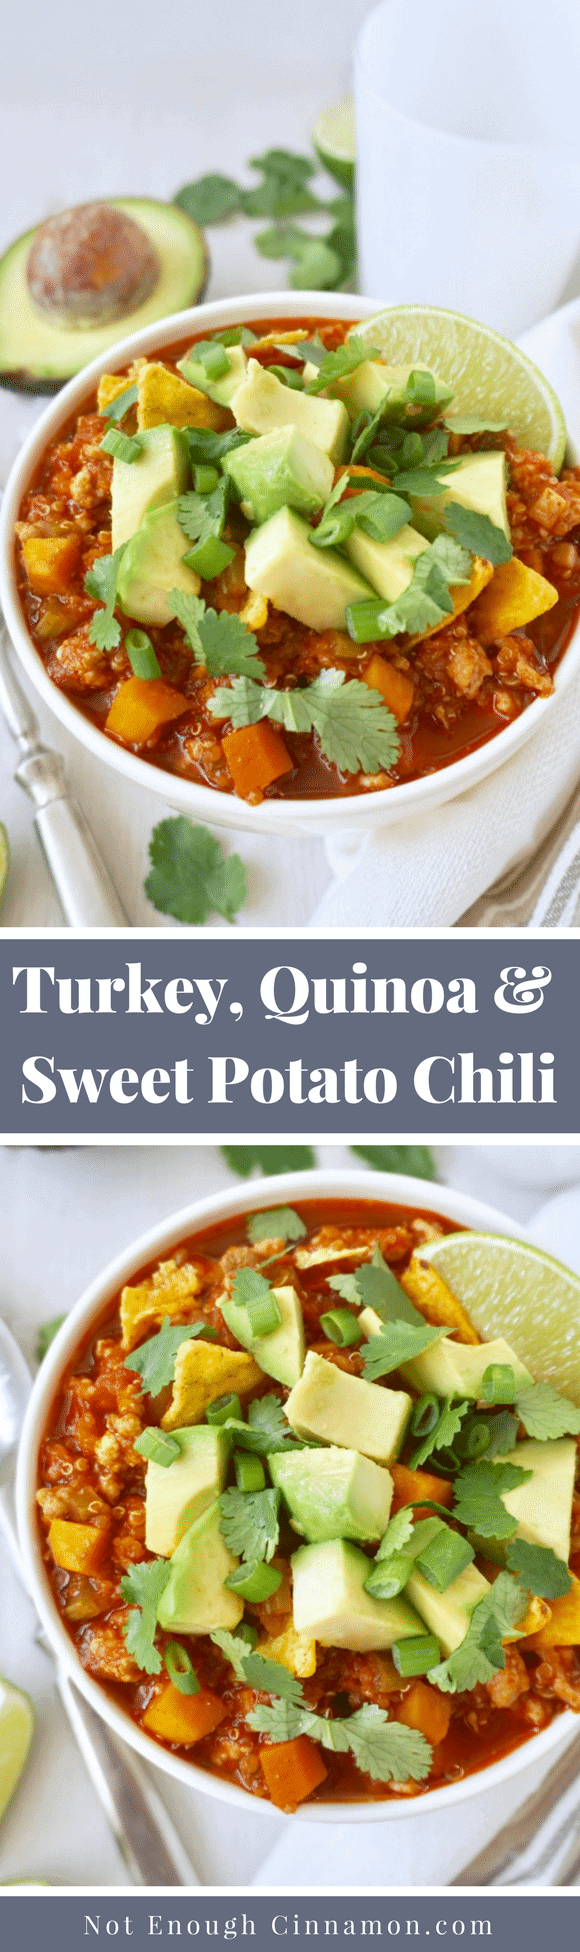 Turkey, Quinoa & Sweet Potato Chili | A hearty and healthy chili, made with superfood quinoa, lean ground turkey and chunks of sweet potatoes. Naturally gluten-free. #cleaneating #glutenfree #healthydinner